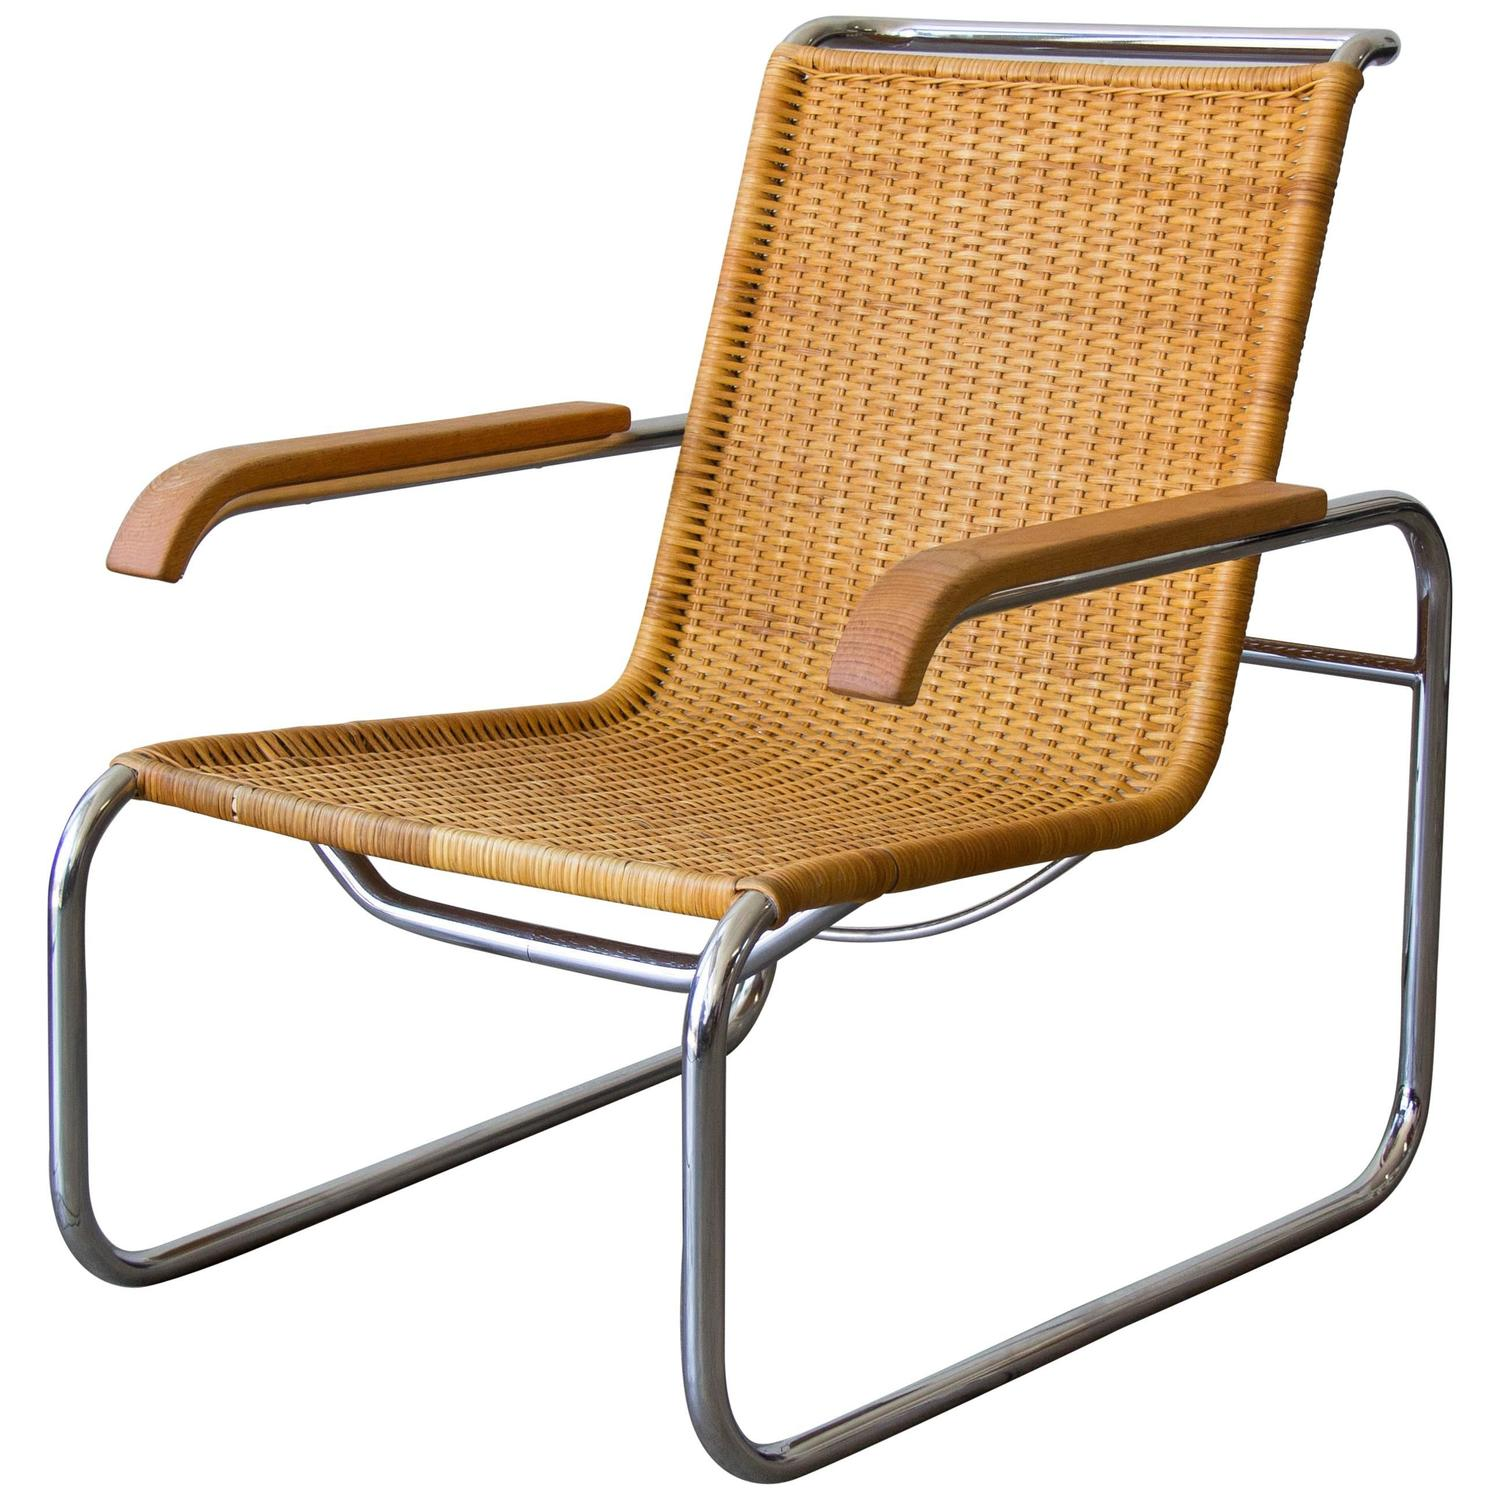 Rare set of twelve victorian solid oak leather antique chairs empire - Marcel Breuer For Thonet B35 Rattan Lounge Chair